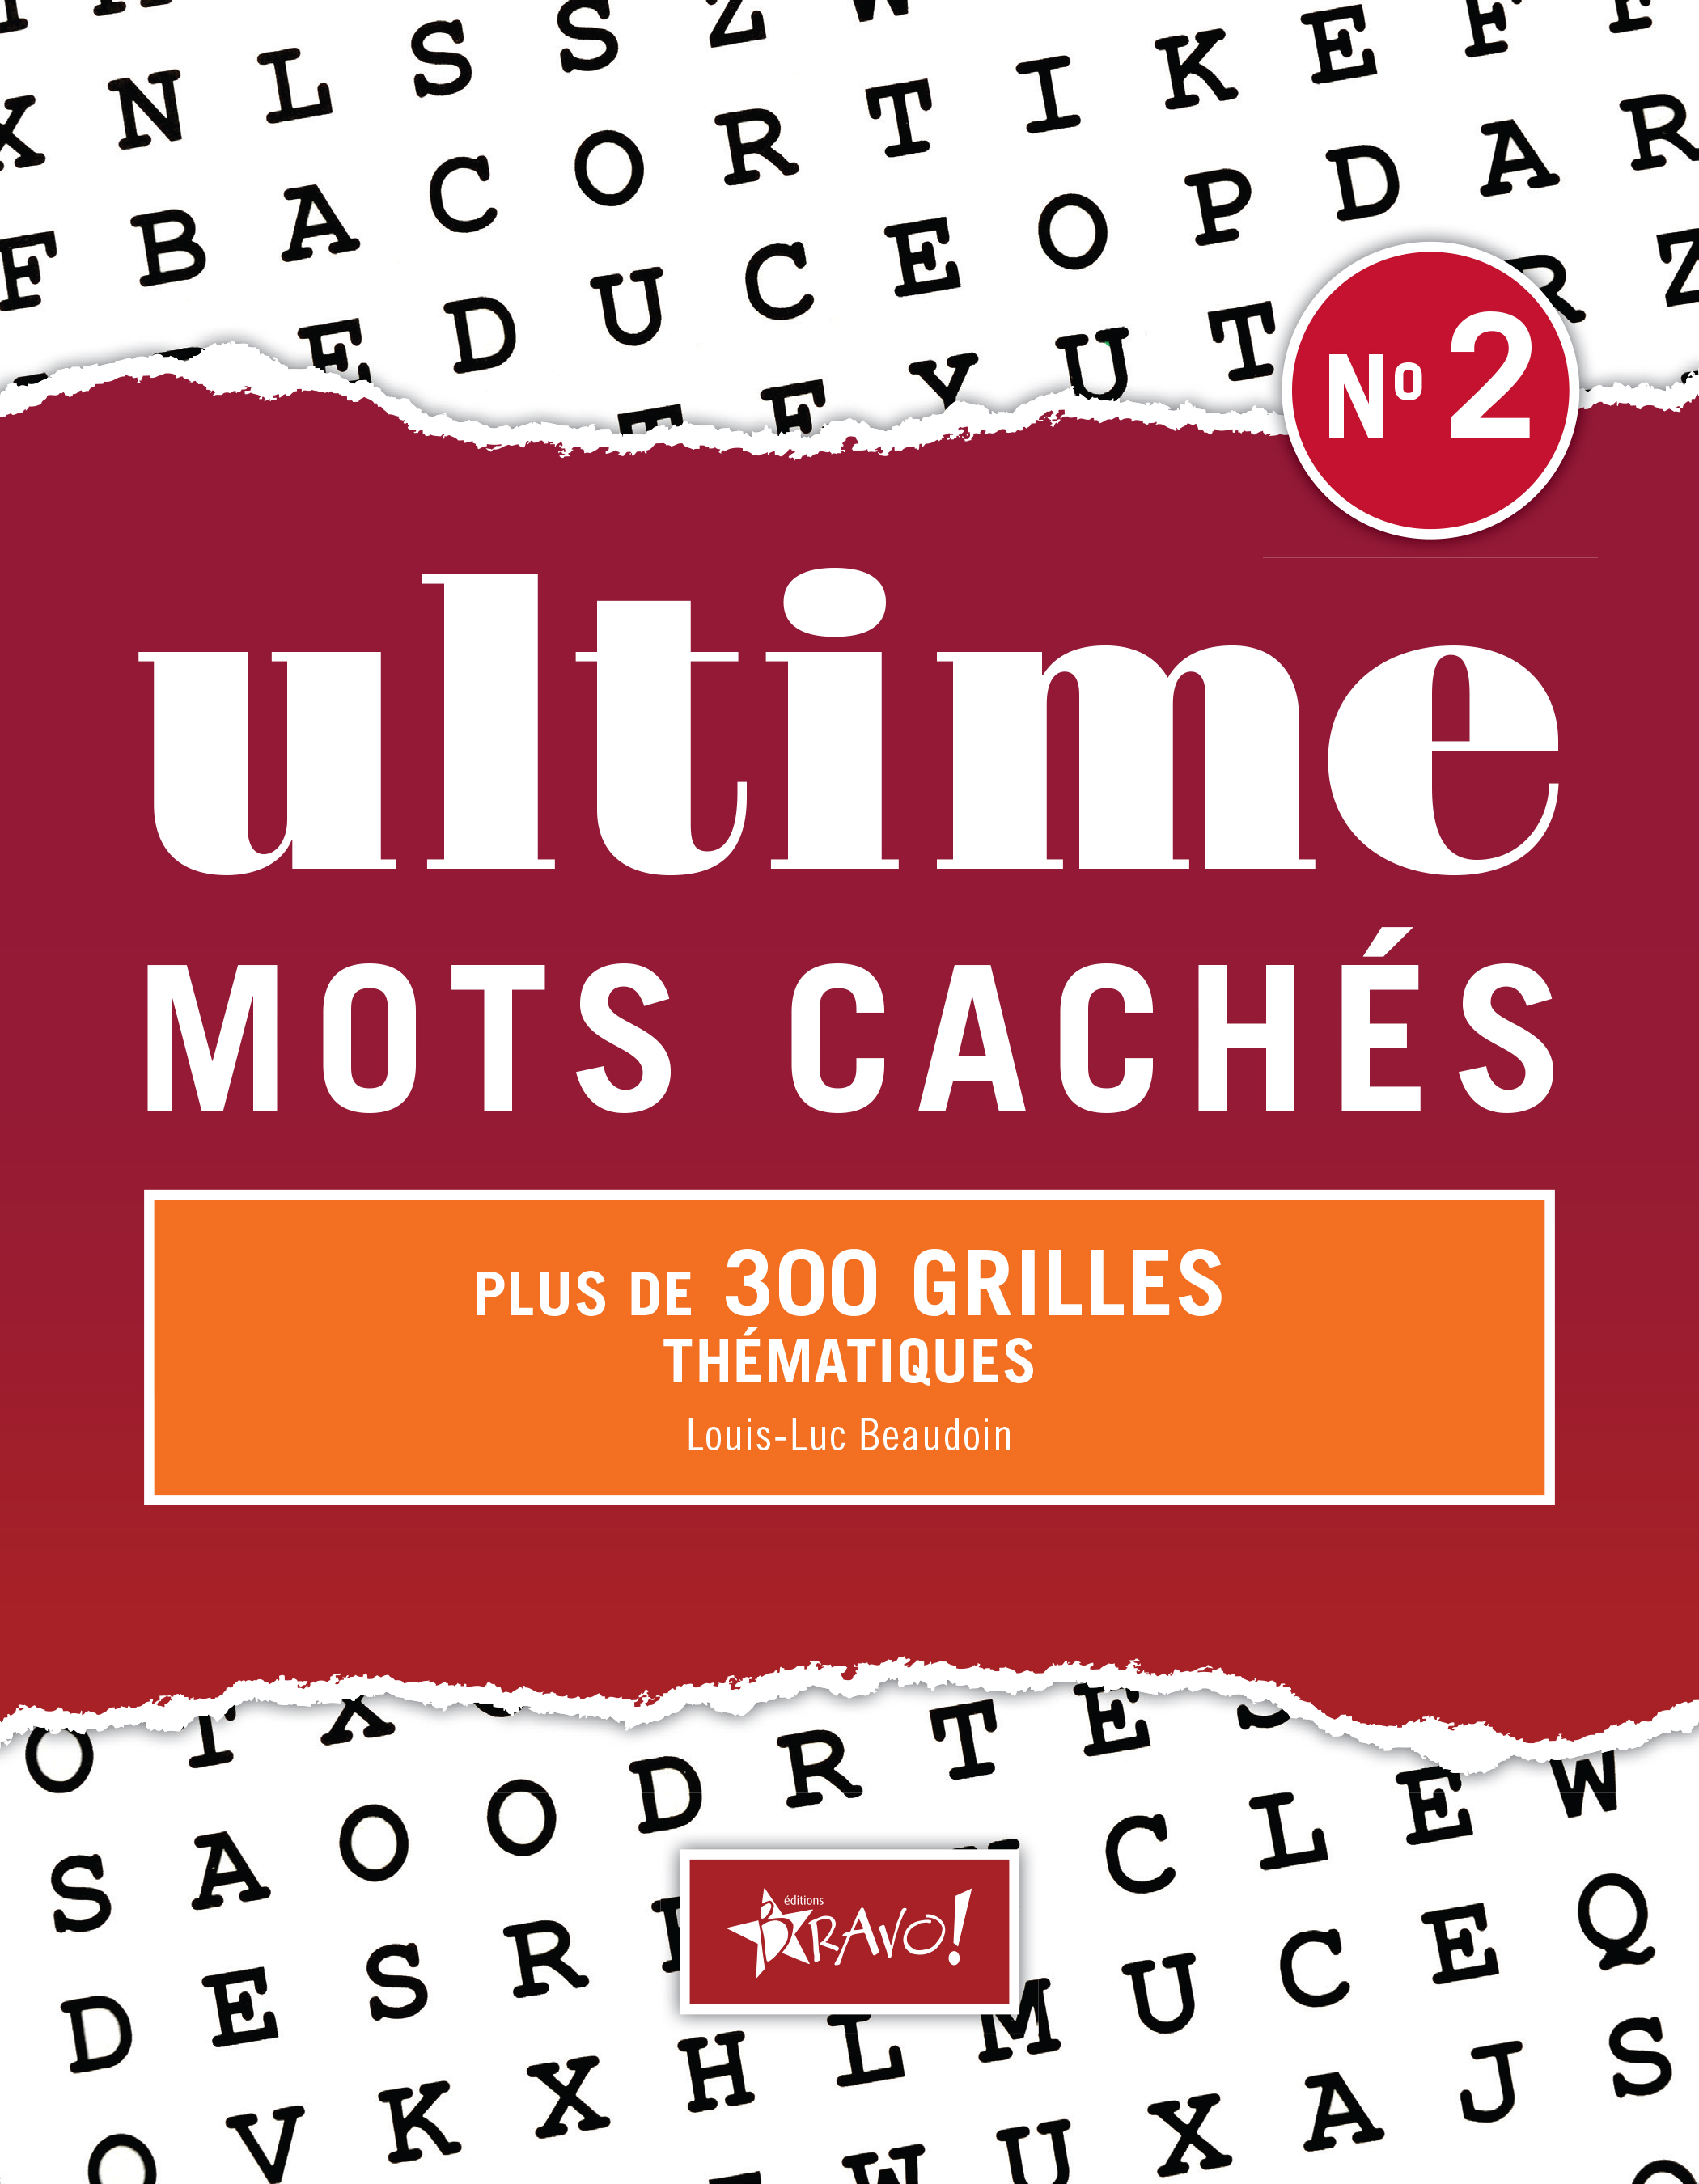 273_ULTIMES Mots caches 2_Cover